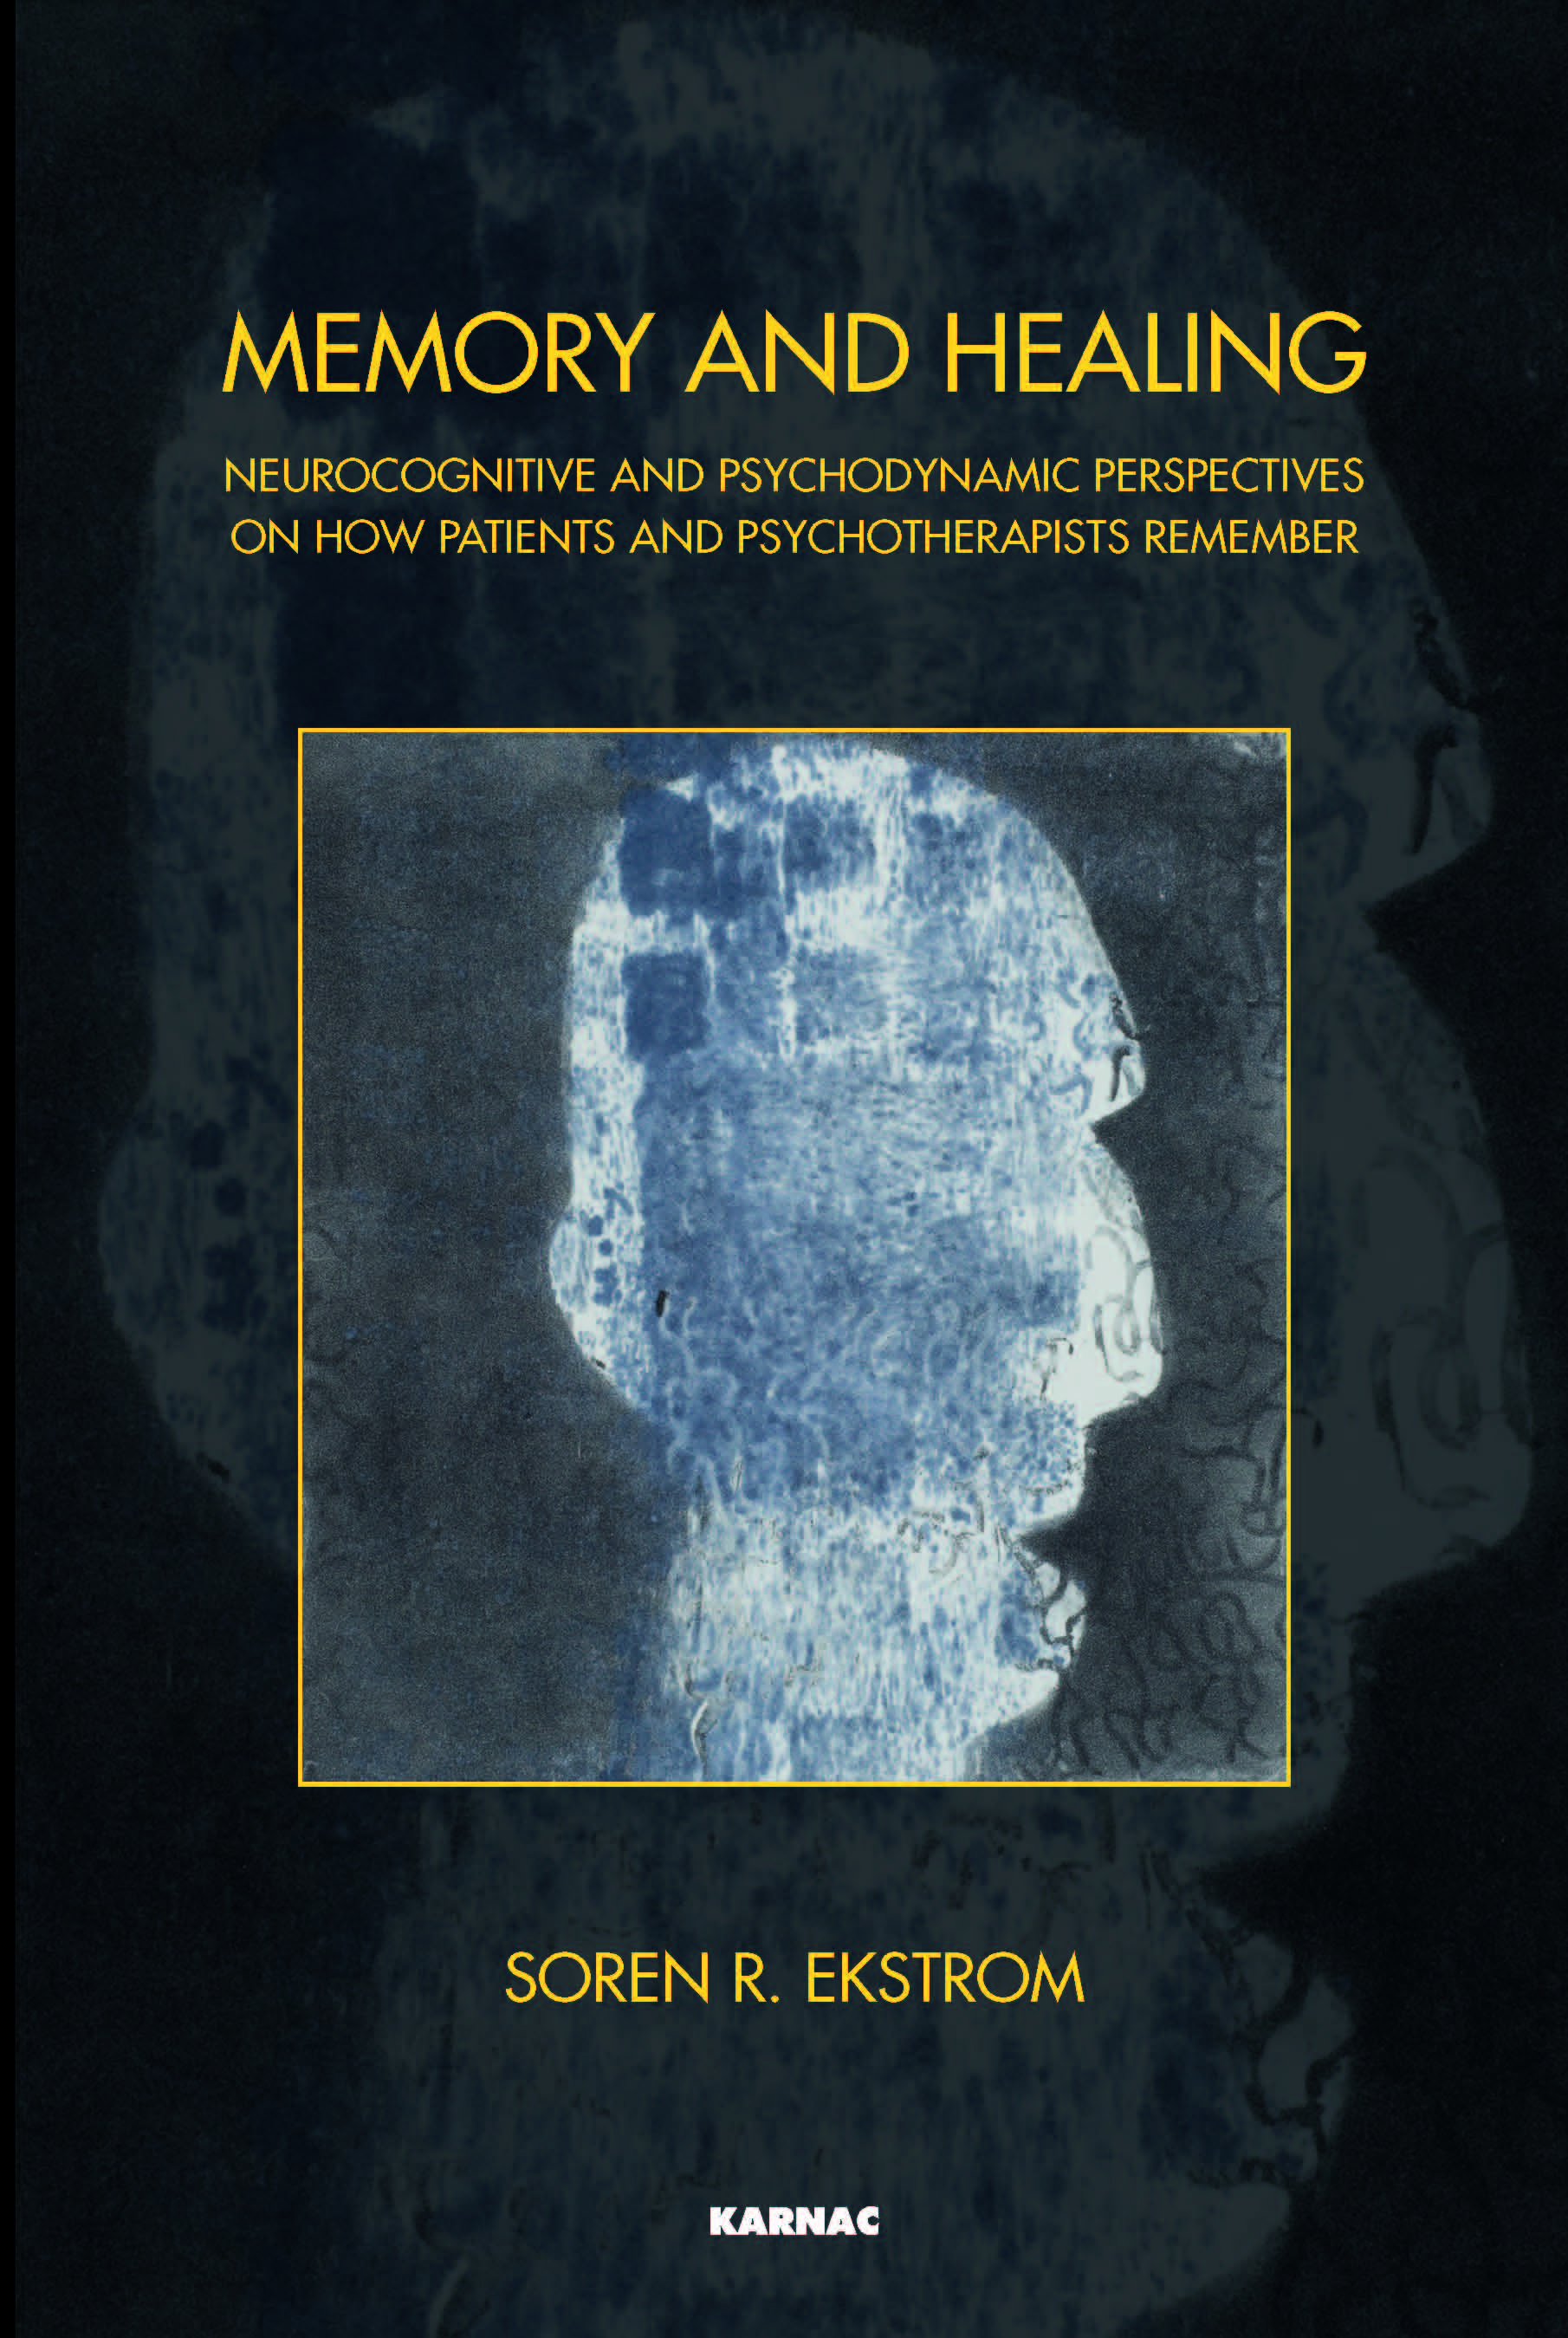 Memory and Healing: Neurocognitive and Psychodynamic Perspectives on How Patients and Psychotherapists Remember